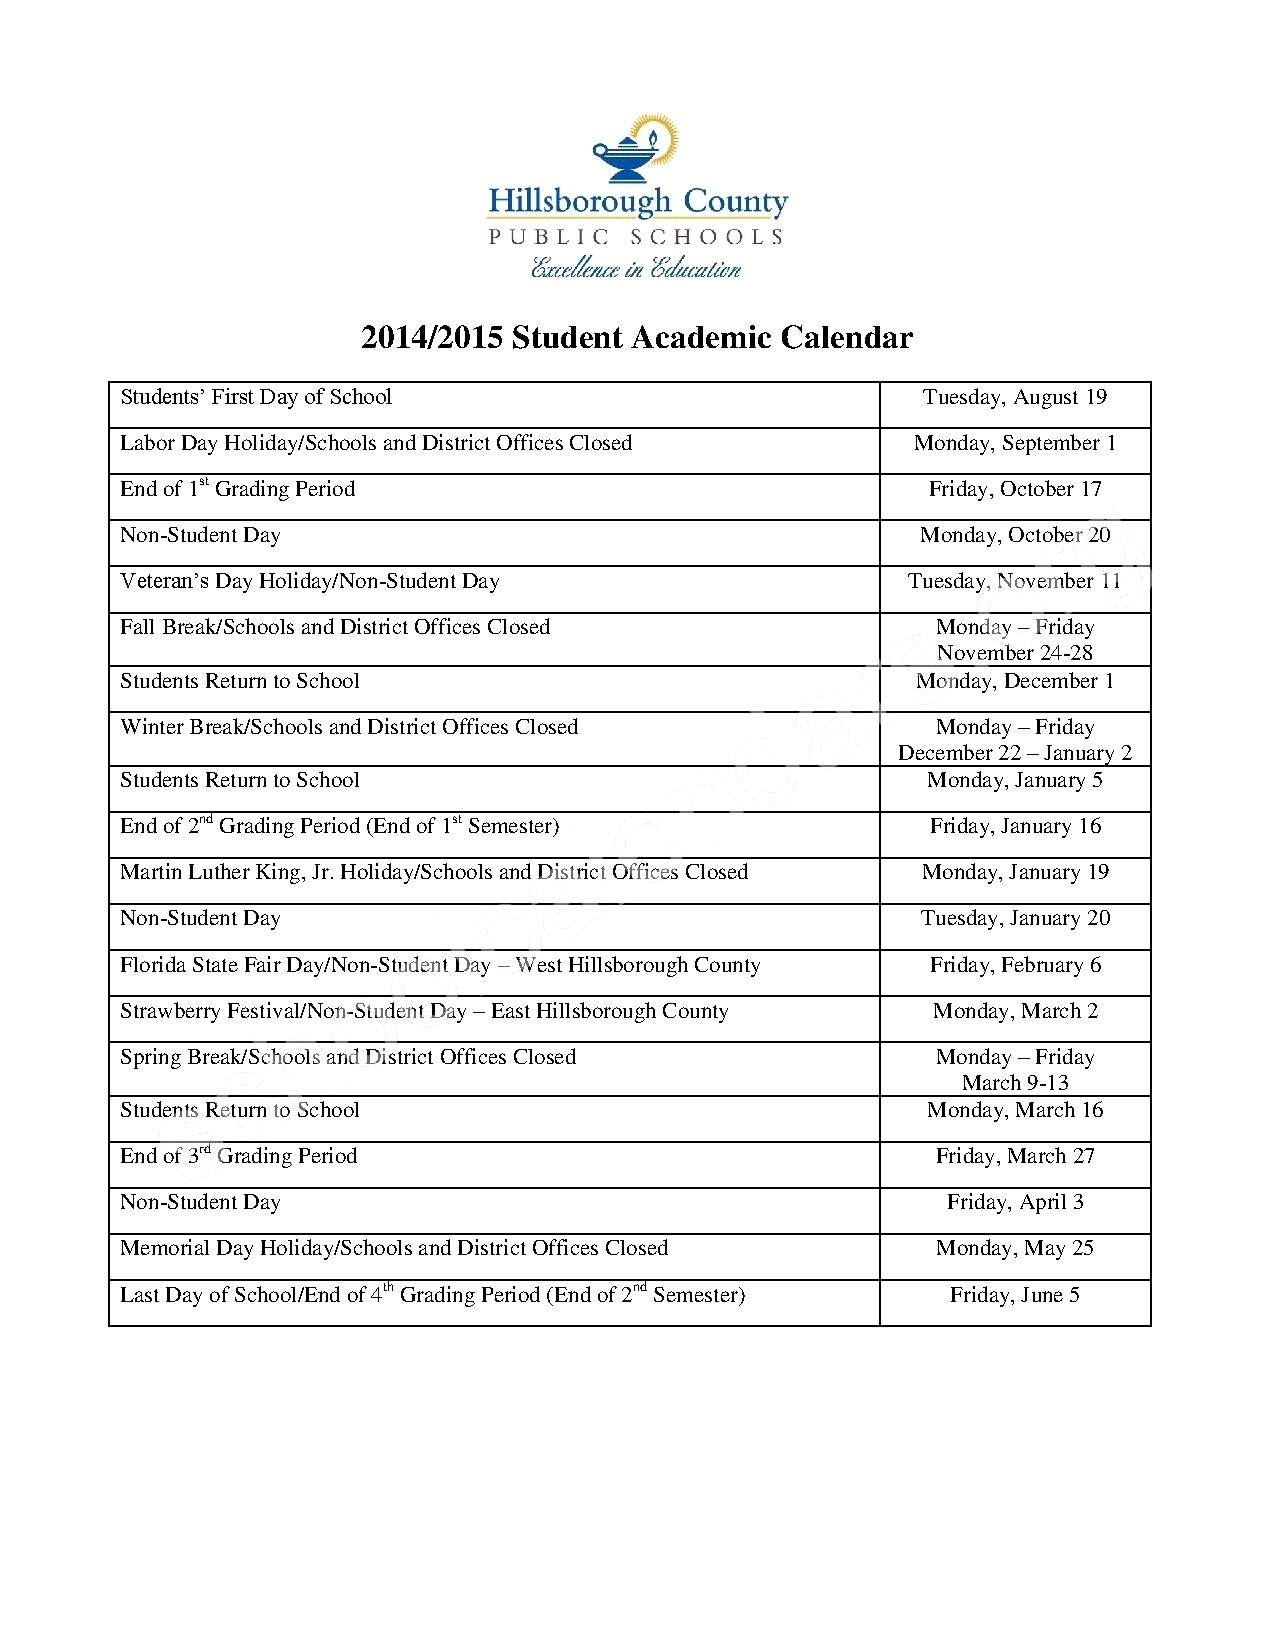 Hillsborough County Schools Calendar | Jcreview_Calendar School 2020 Hillsborough County